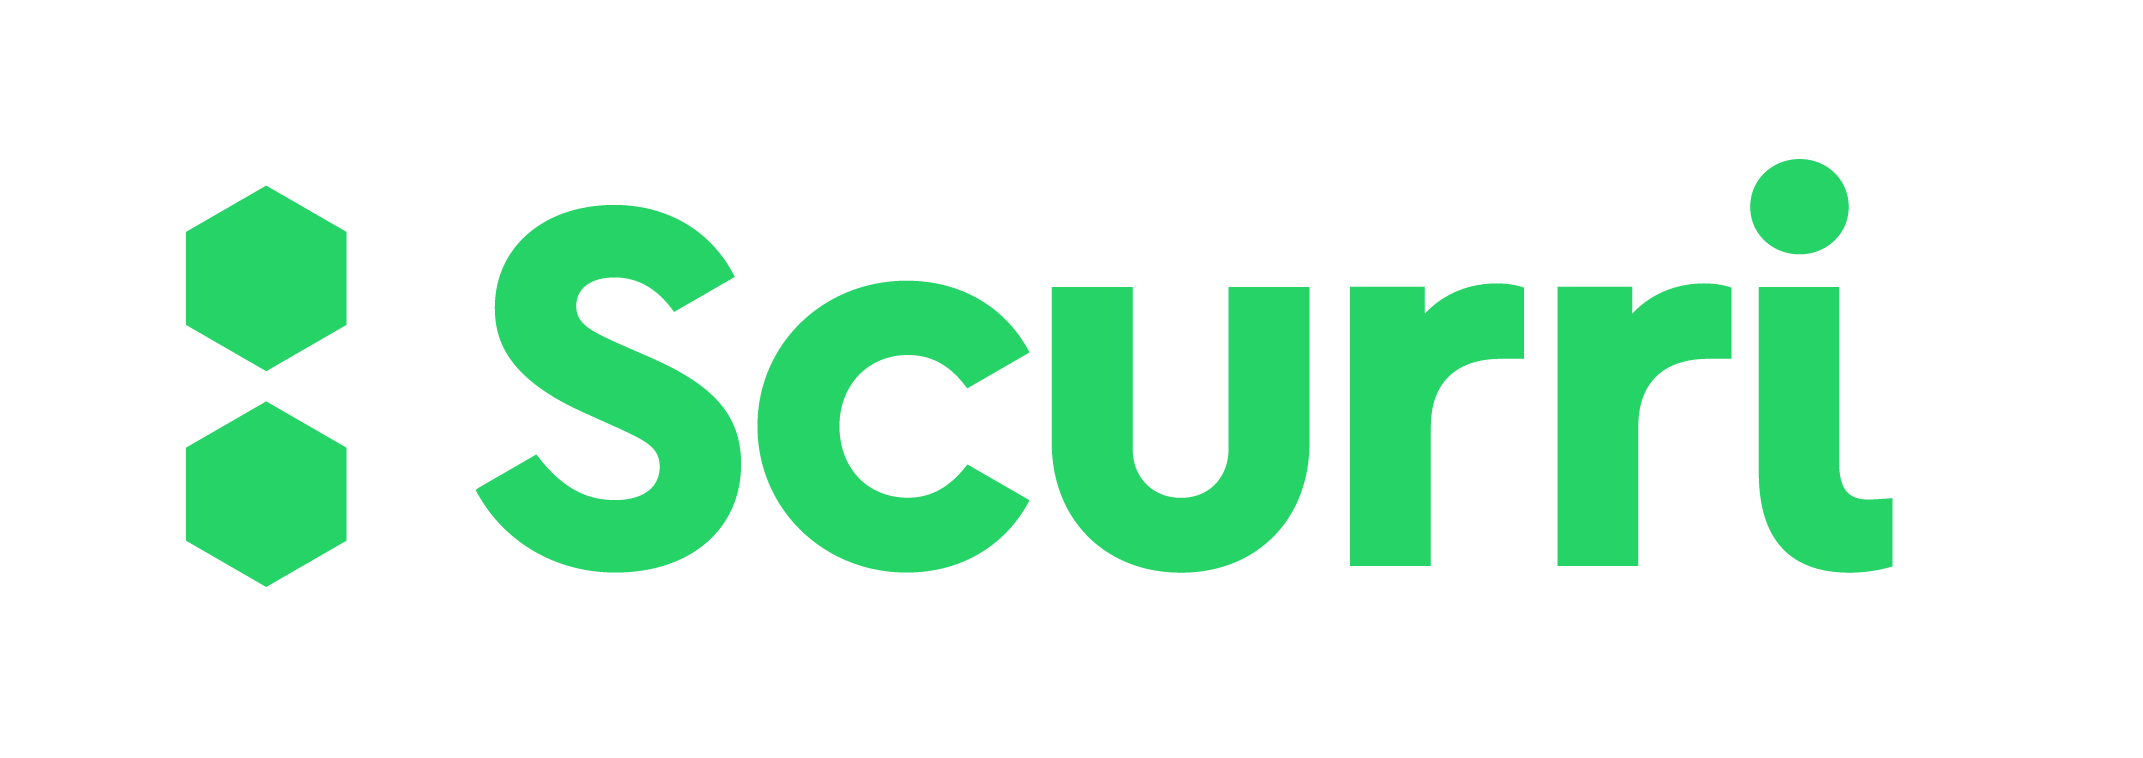 Live Scurri Support Help Center home page